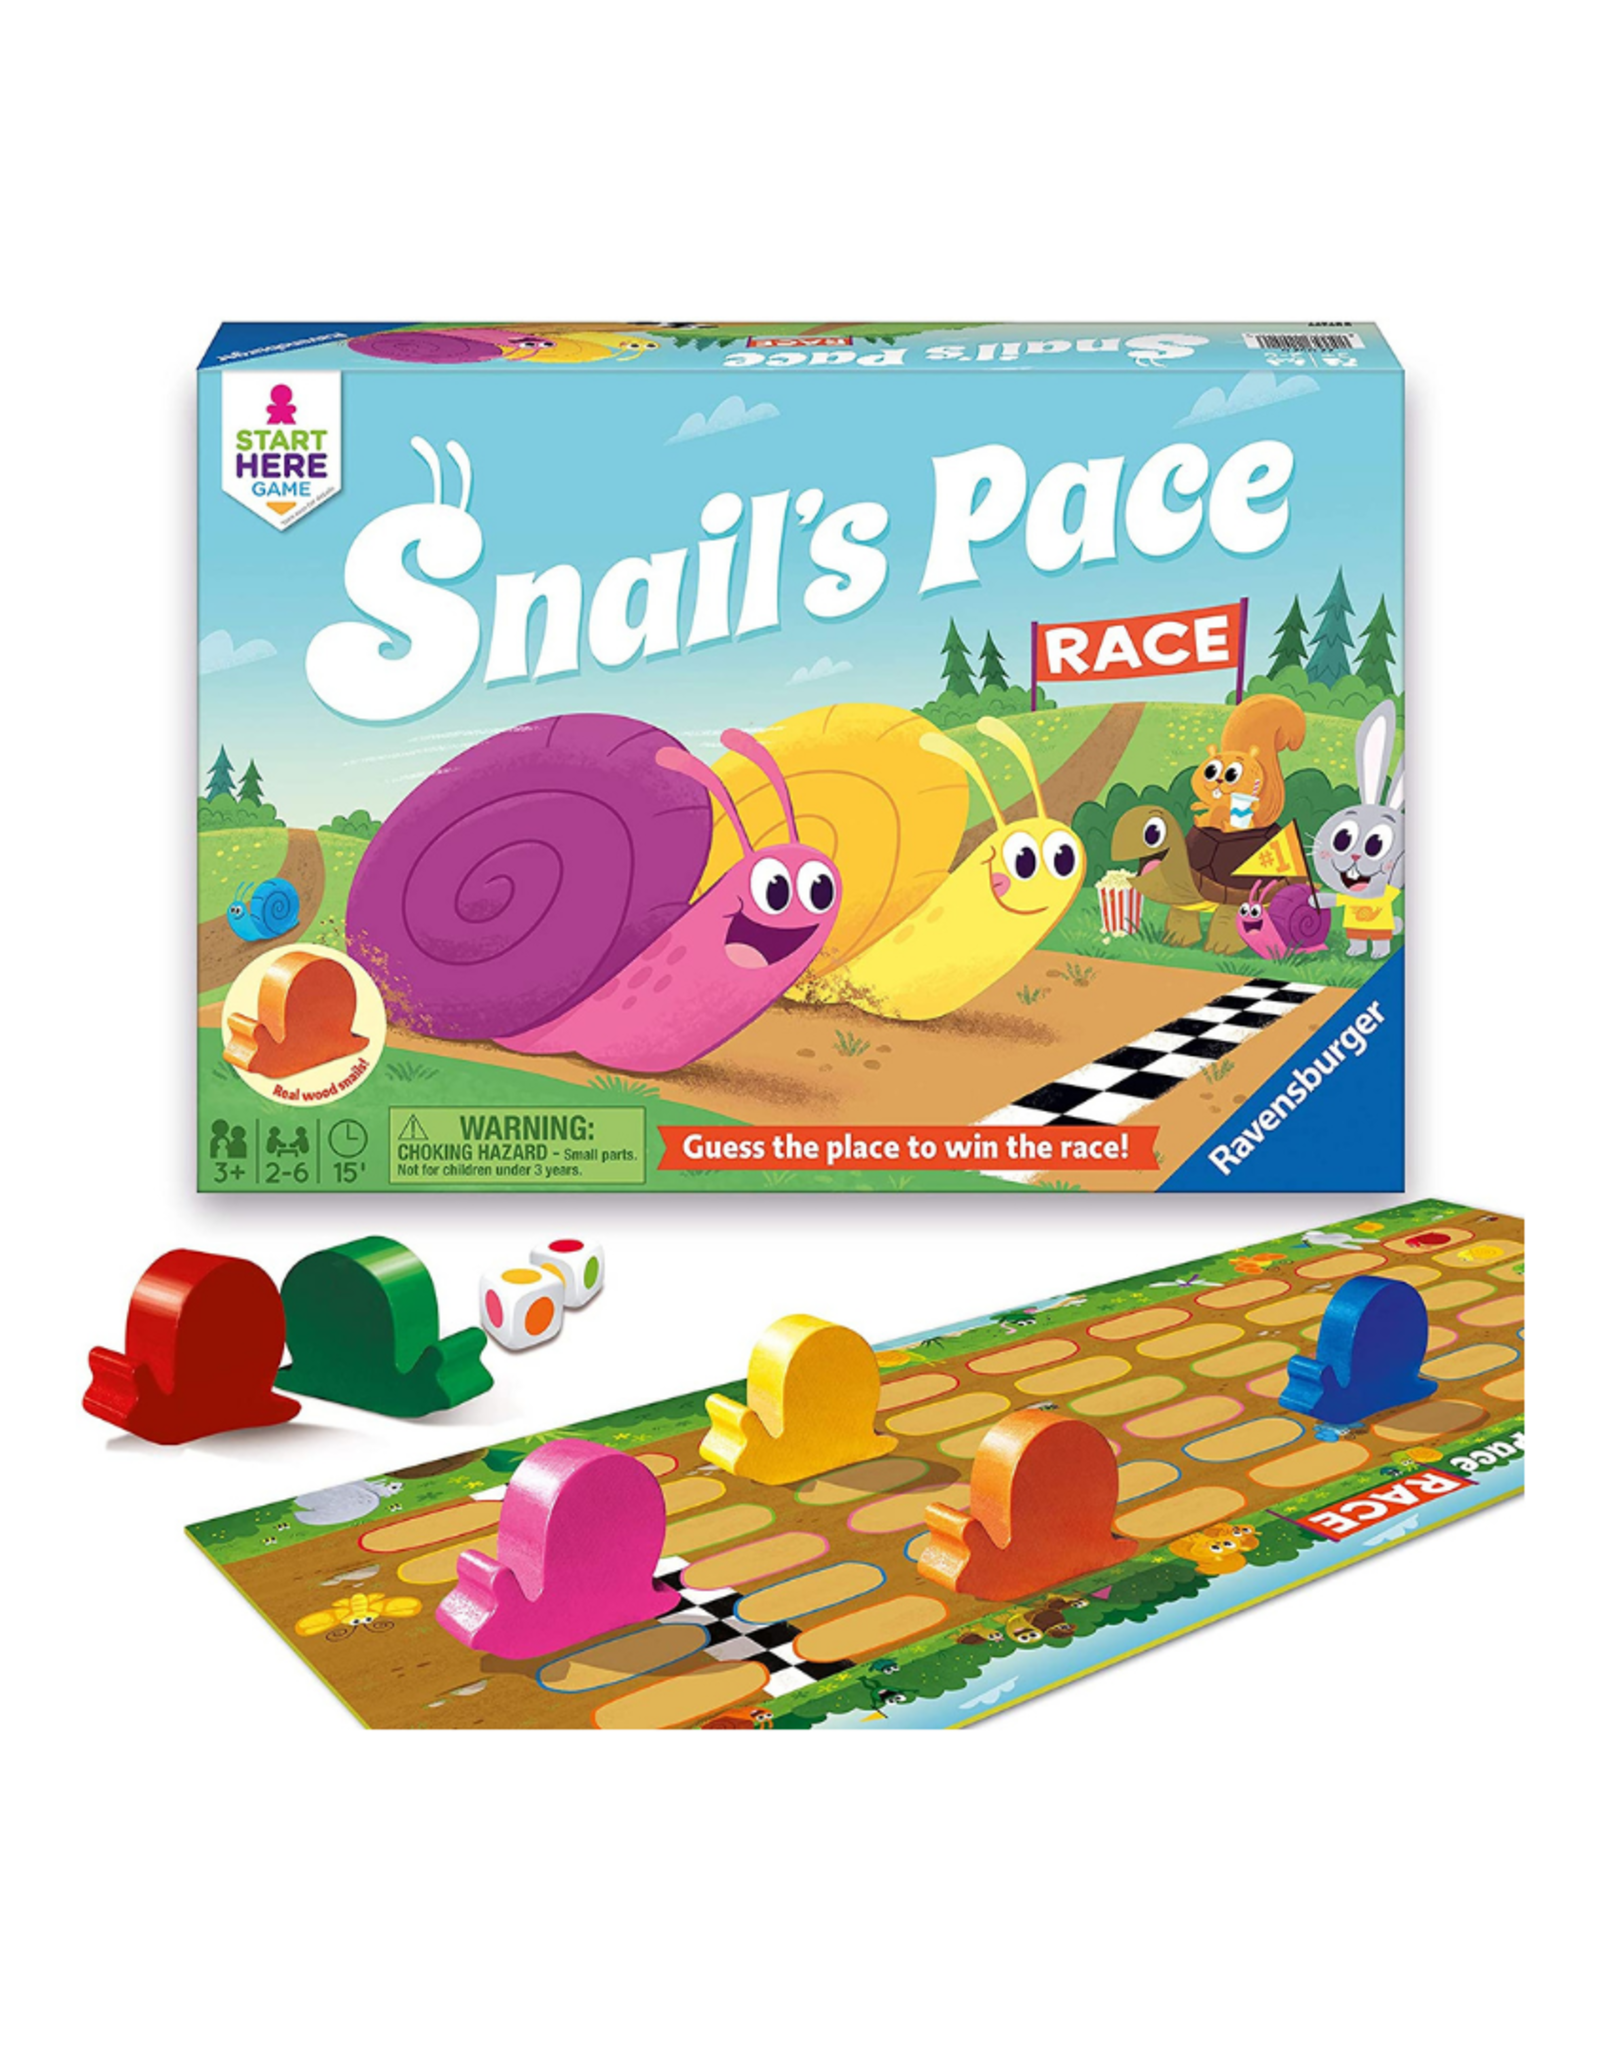 Ravensburger Snail's Pace Race Game